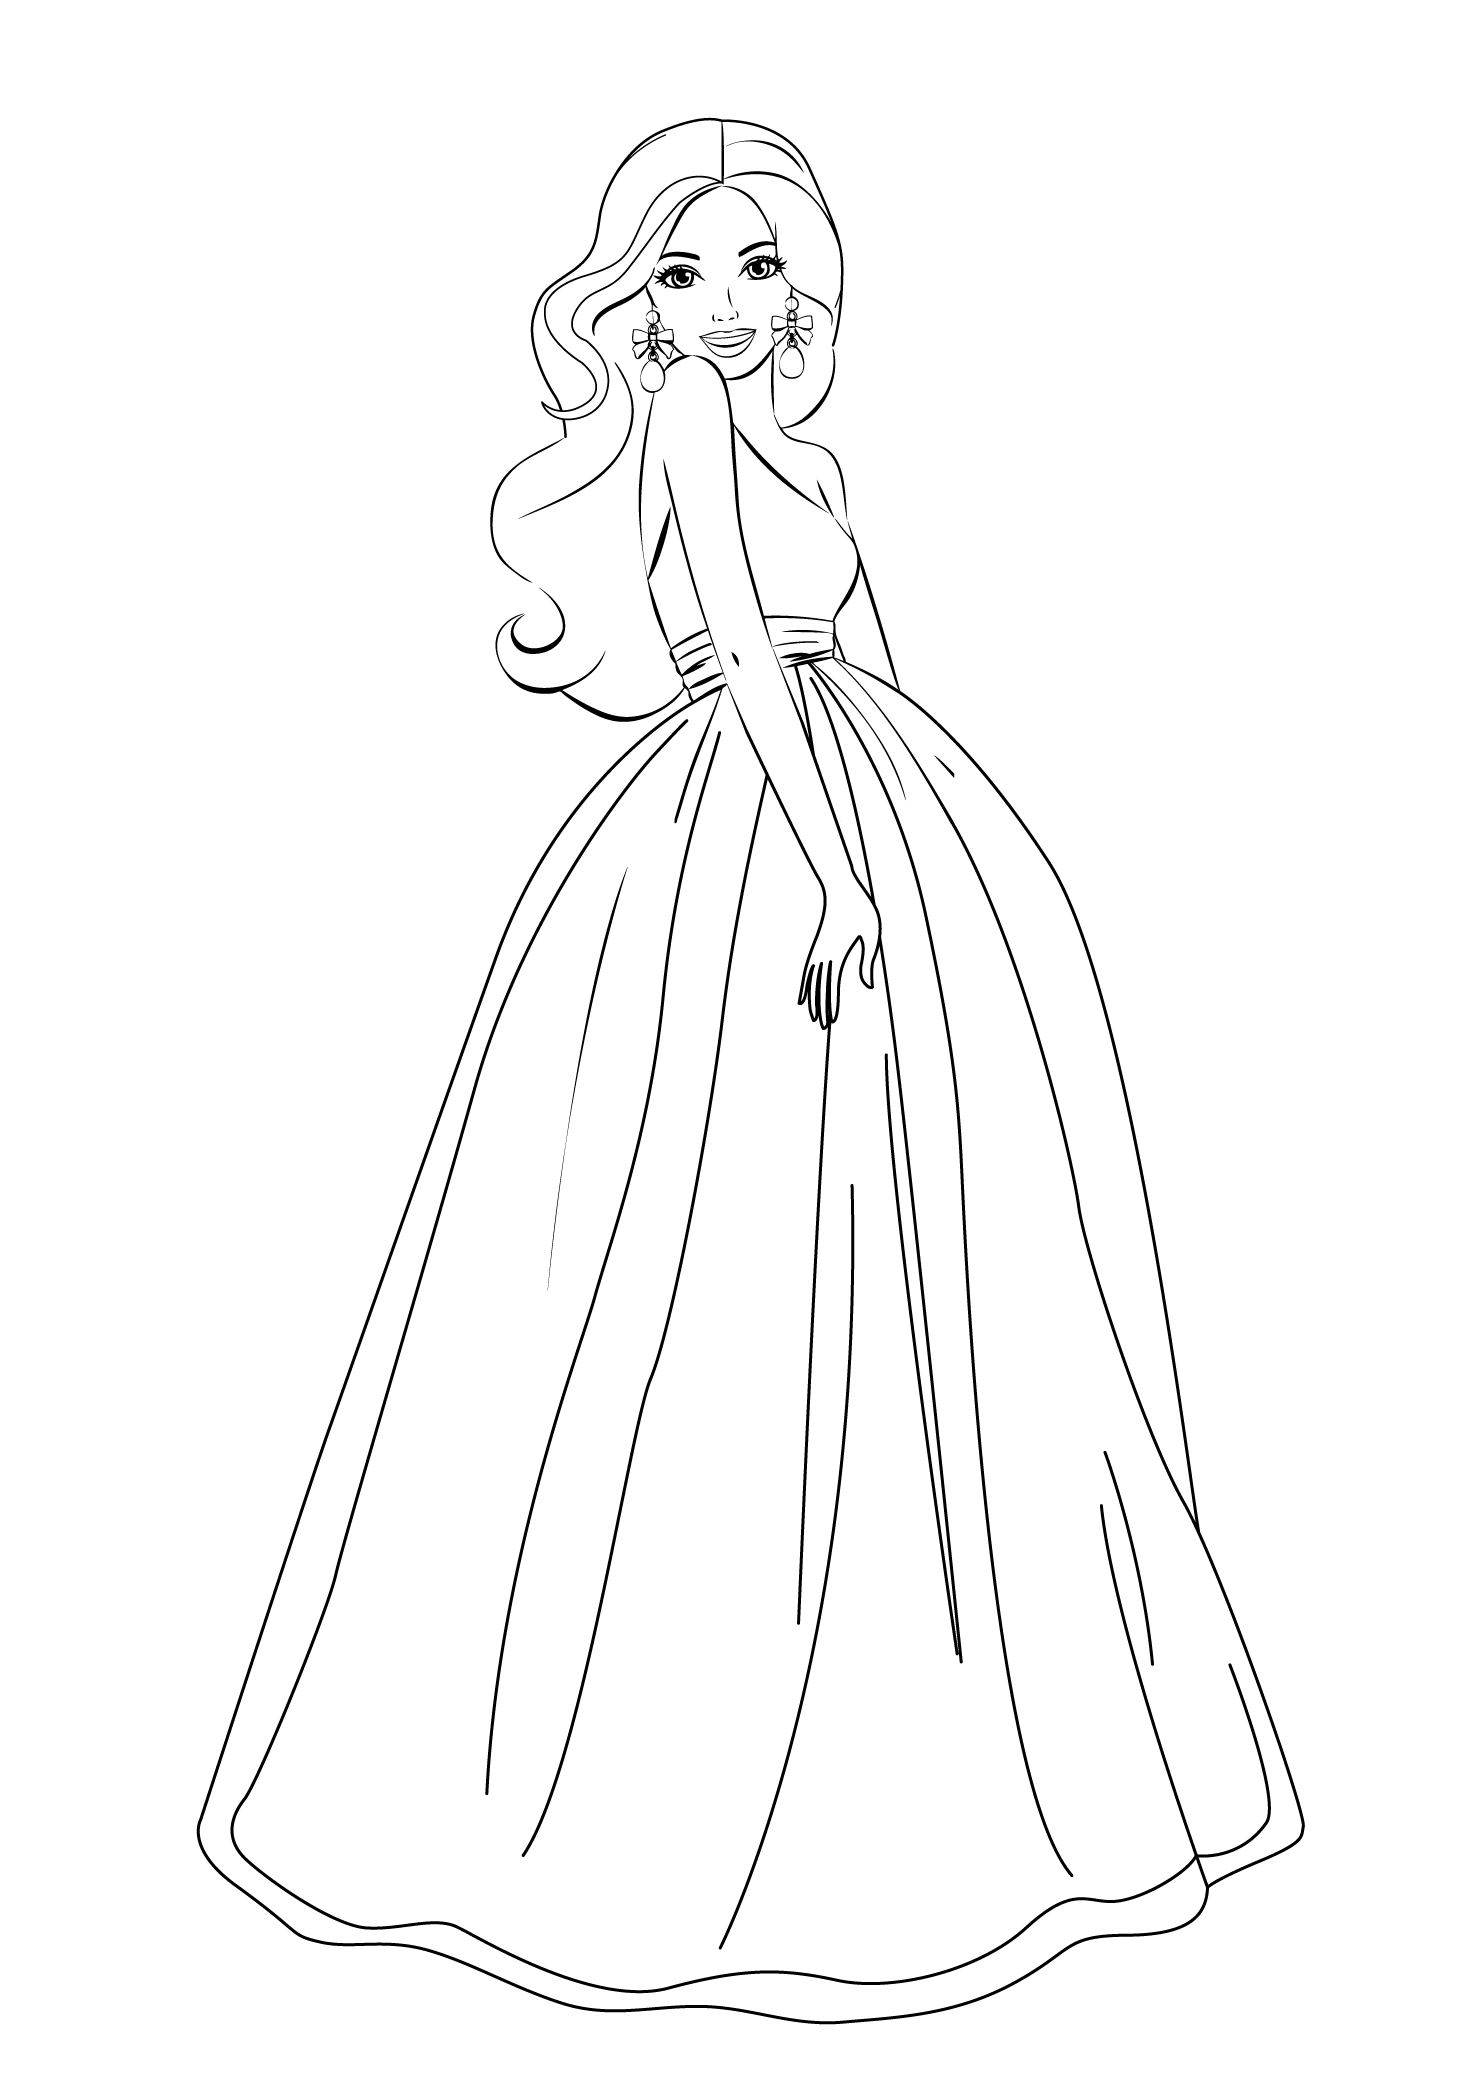 barbie free coloring pages barbie coloring pages for girls free printable barbie pages barbie coloring free